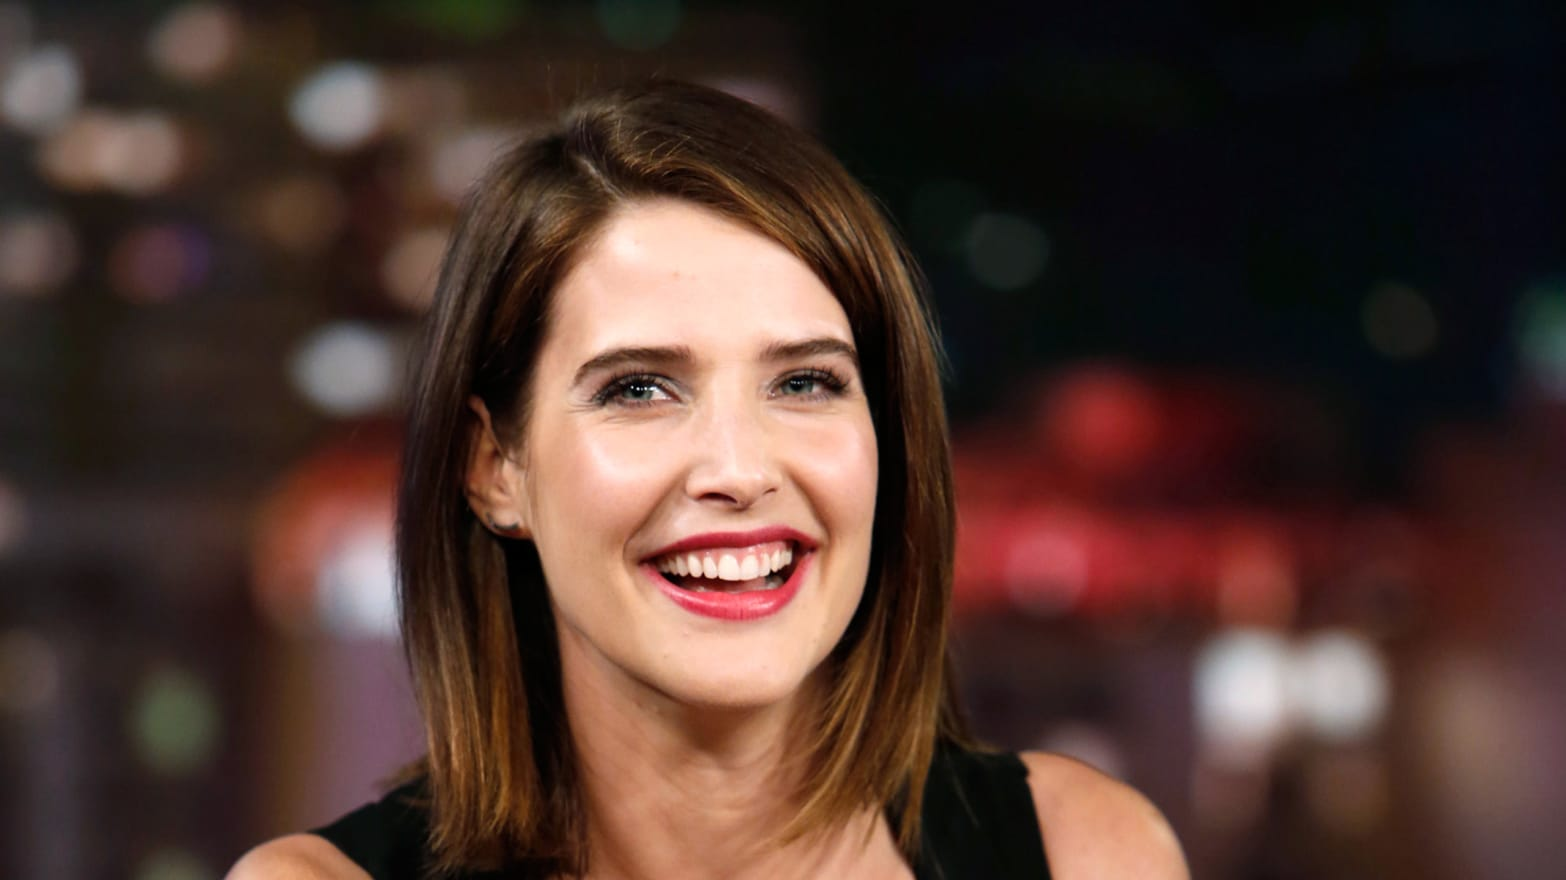 Selfie Pics Cobie Smulders naked photo 2017